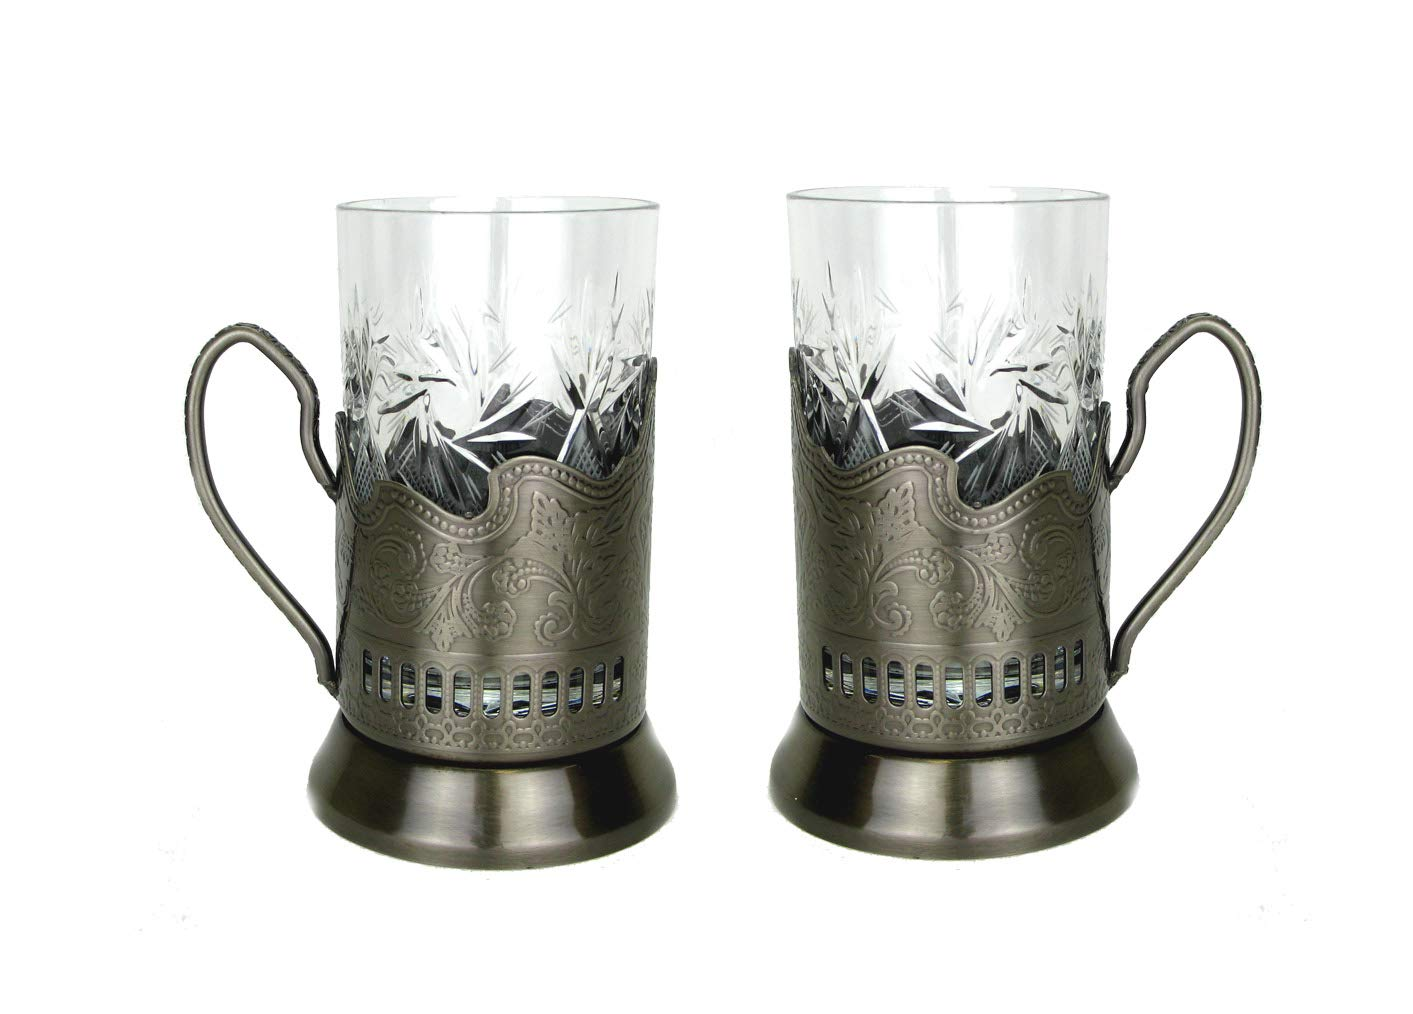 Combination of 2 Russian CUT Crystal Drinking Tea Glasses W/metal Glass Holders Podstakannik for Hot or Cold Liquids by Belarus SYNCHKG038569